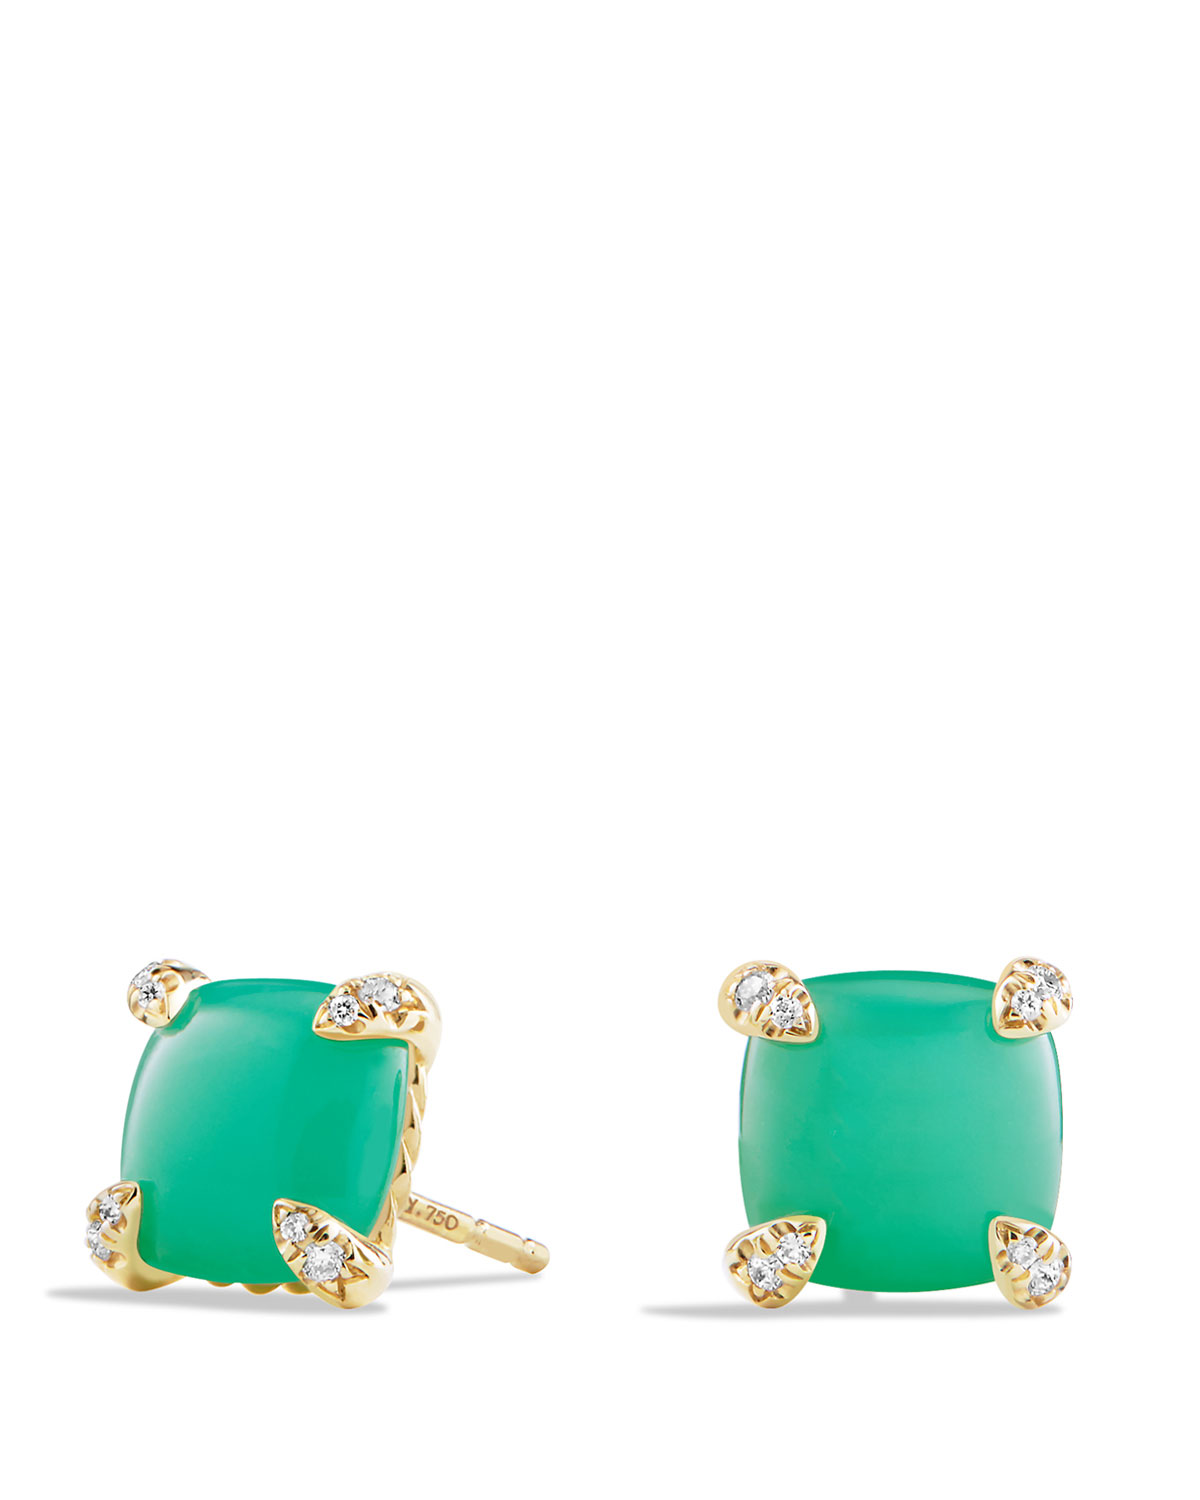 Châtelaine 8mm Cabochon Chrysoprase Diamond Earrings